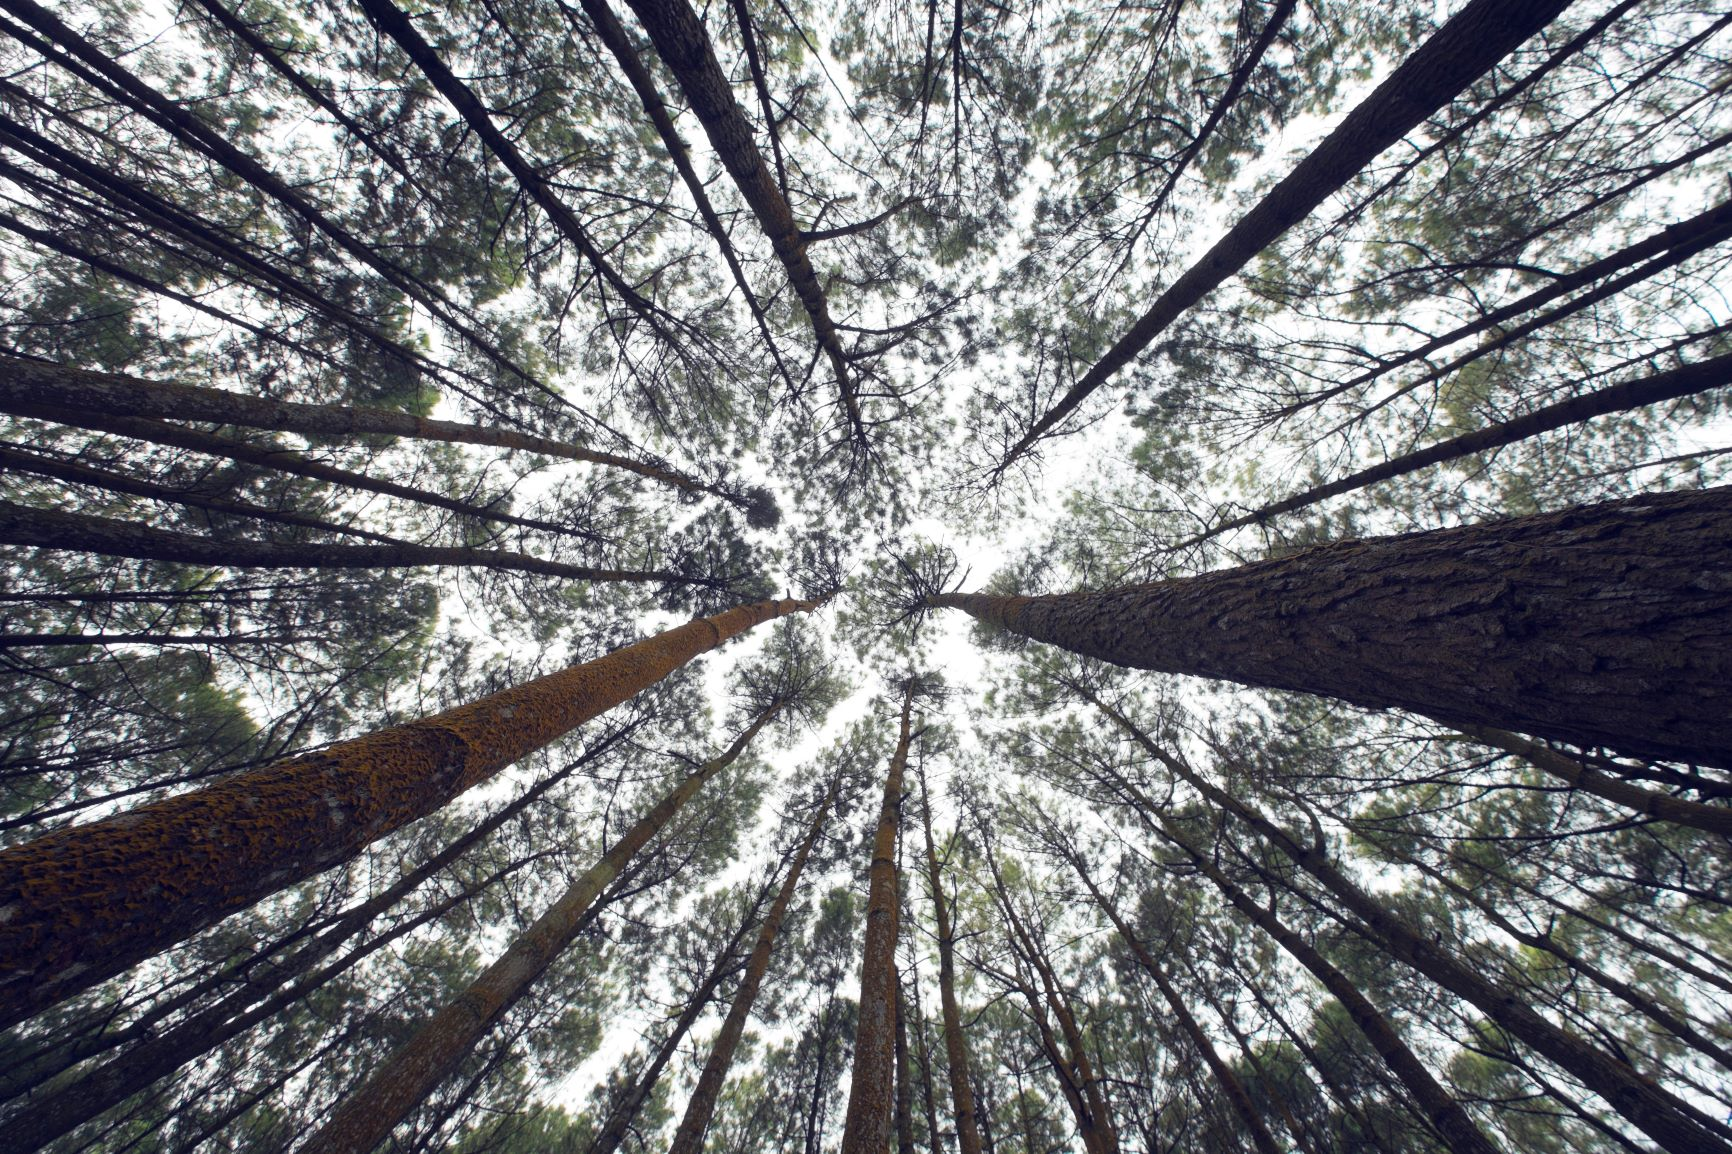 Canva - Trees in the forest.jpg